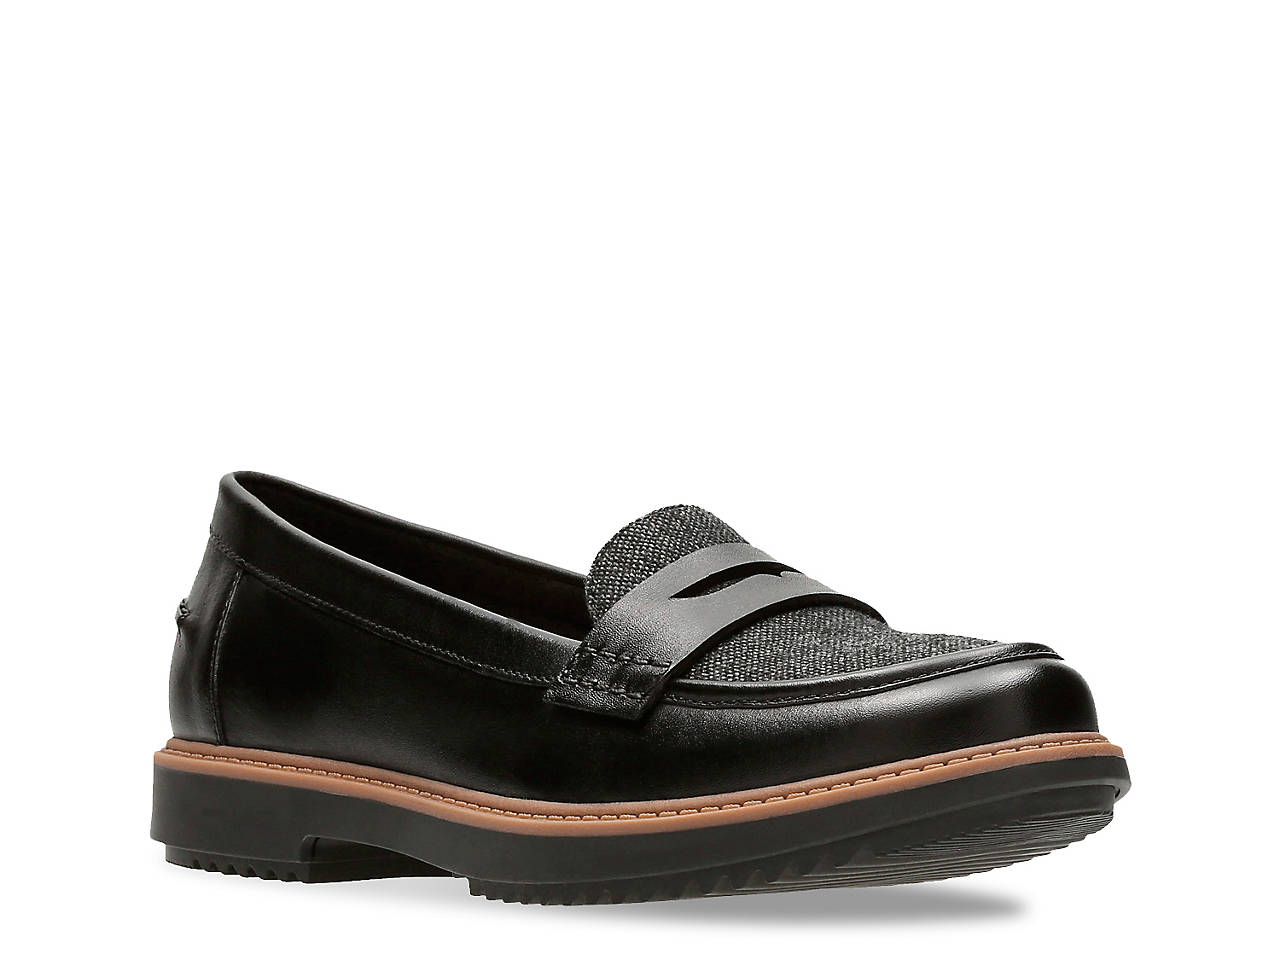 clearance perfect Clarks Leather Slip-on Loafers - Raisie Eletta sale pay with visa RoacwbG08